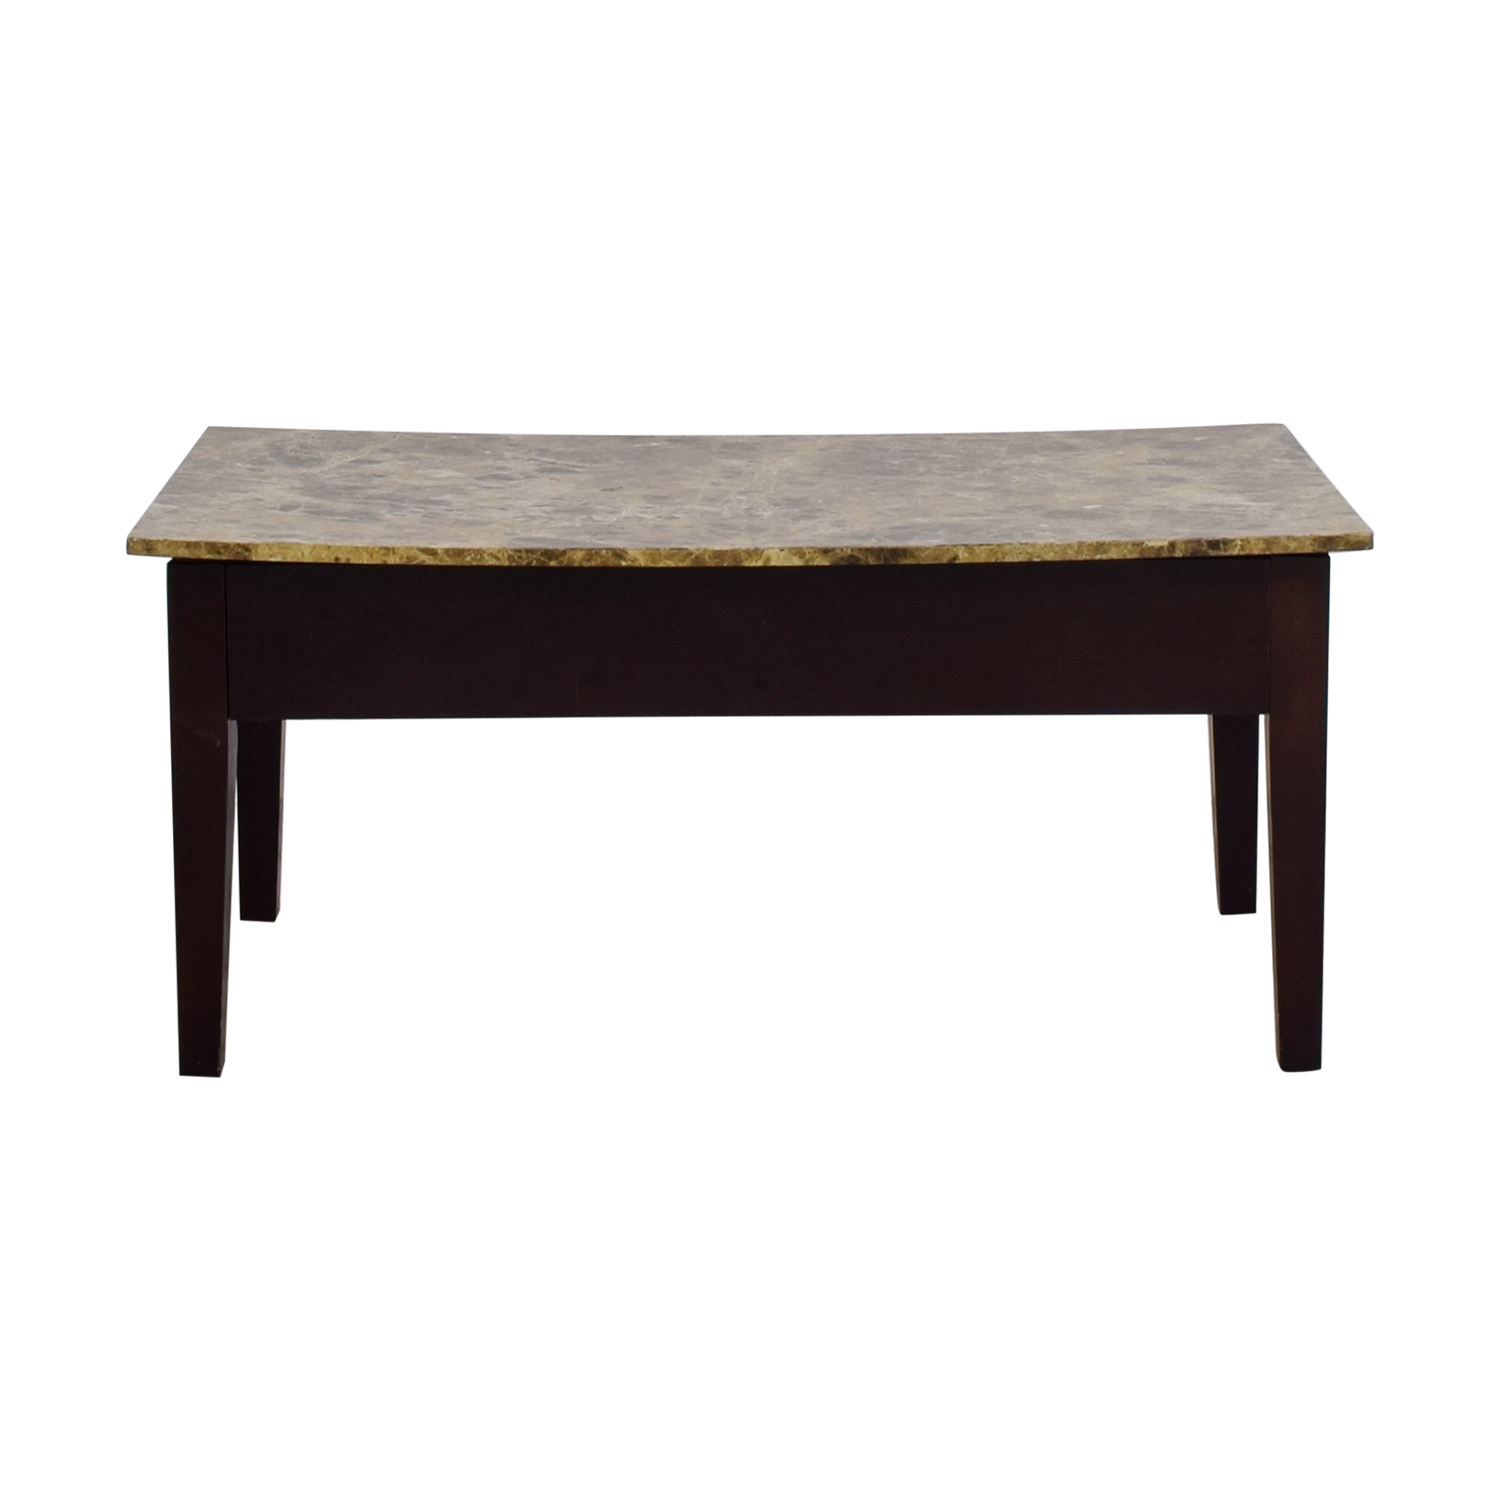 Faux Marble Top Coffee Table With Storage dimensions